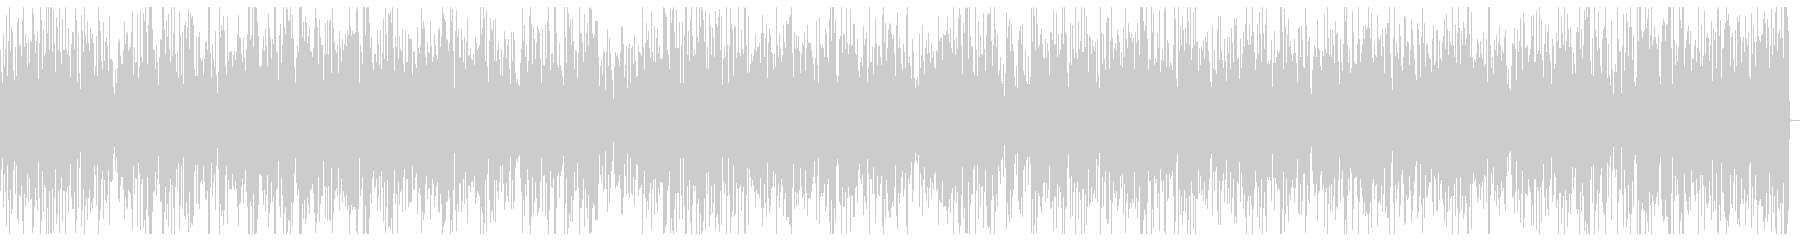 Bright, gentle and warm jazz piano (long)'s unreproduced waveform